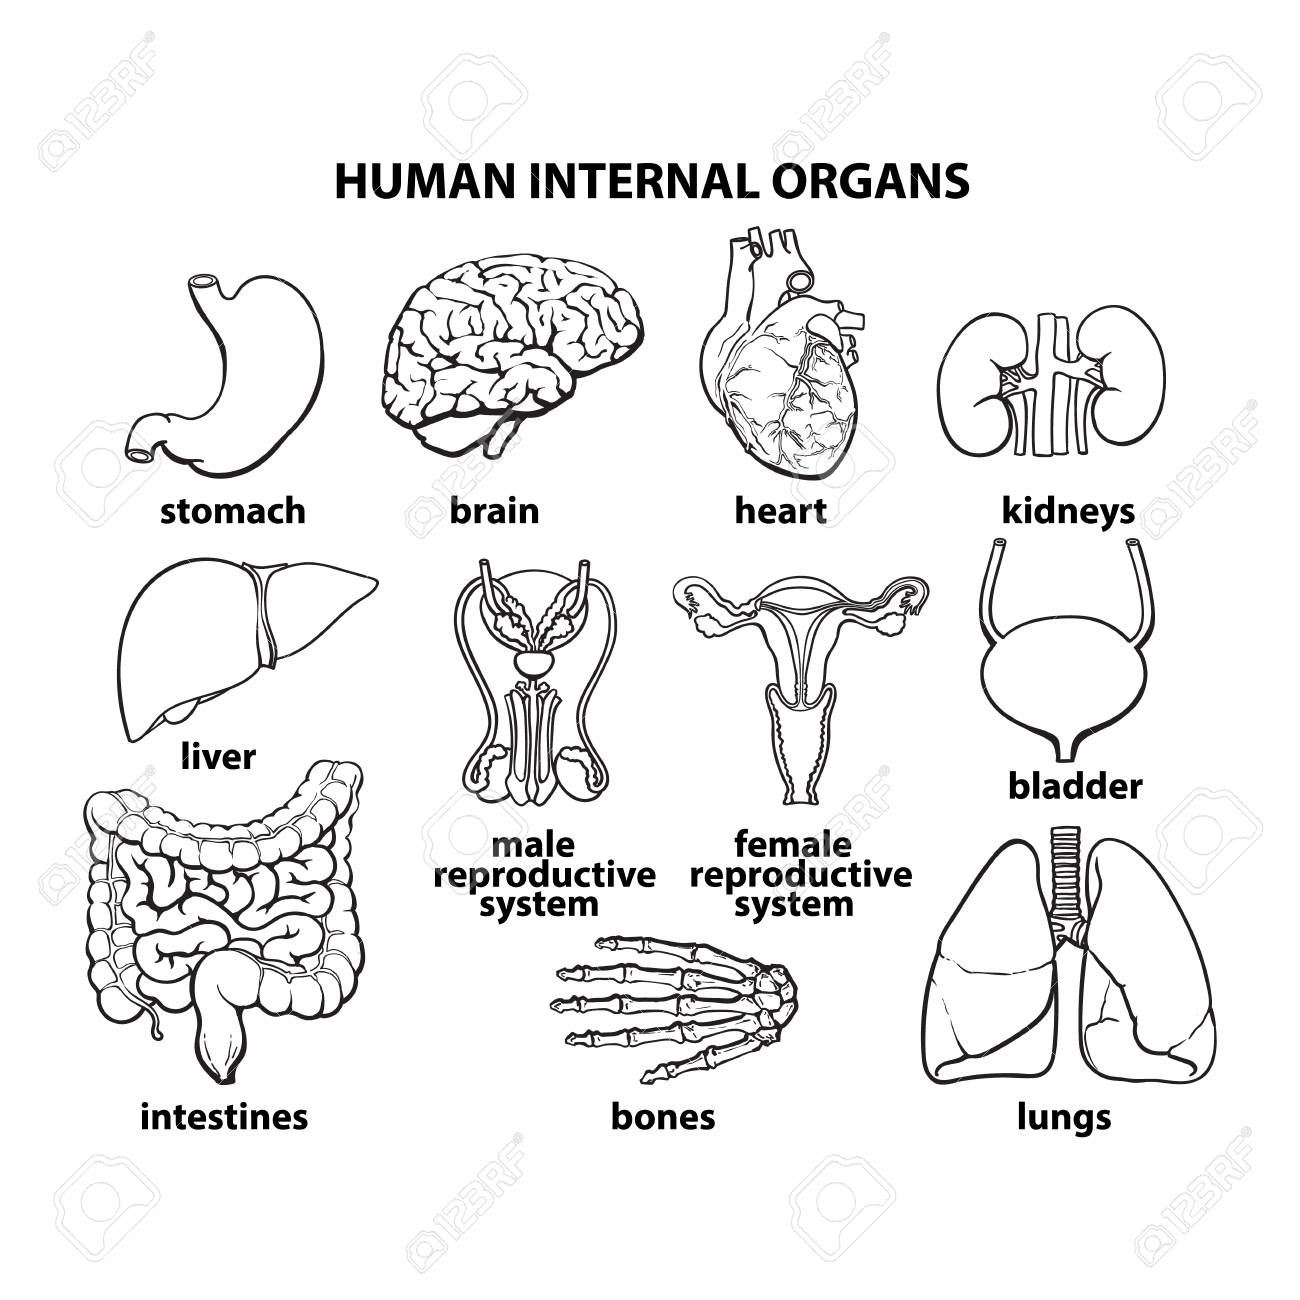 Human Organs Internal Organs Set Human Anatomy Internal Parts